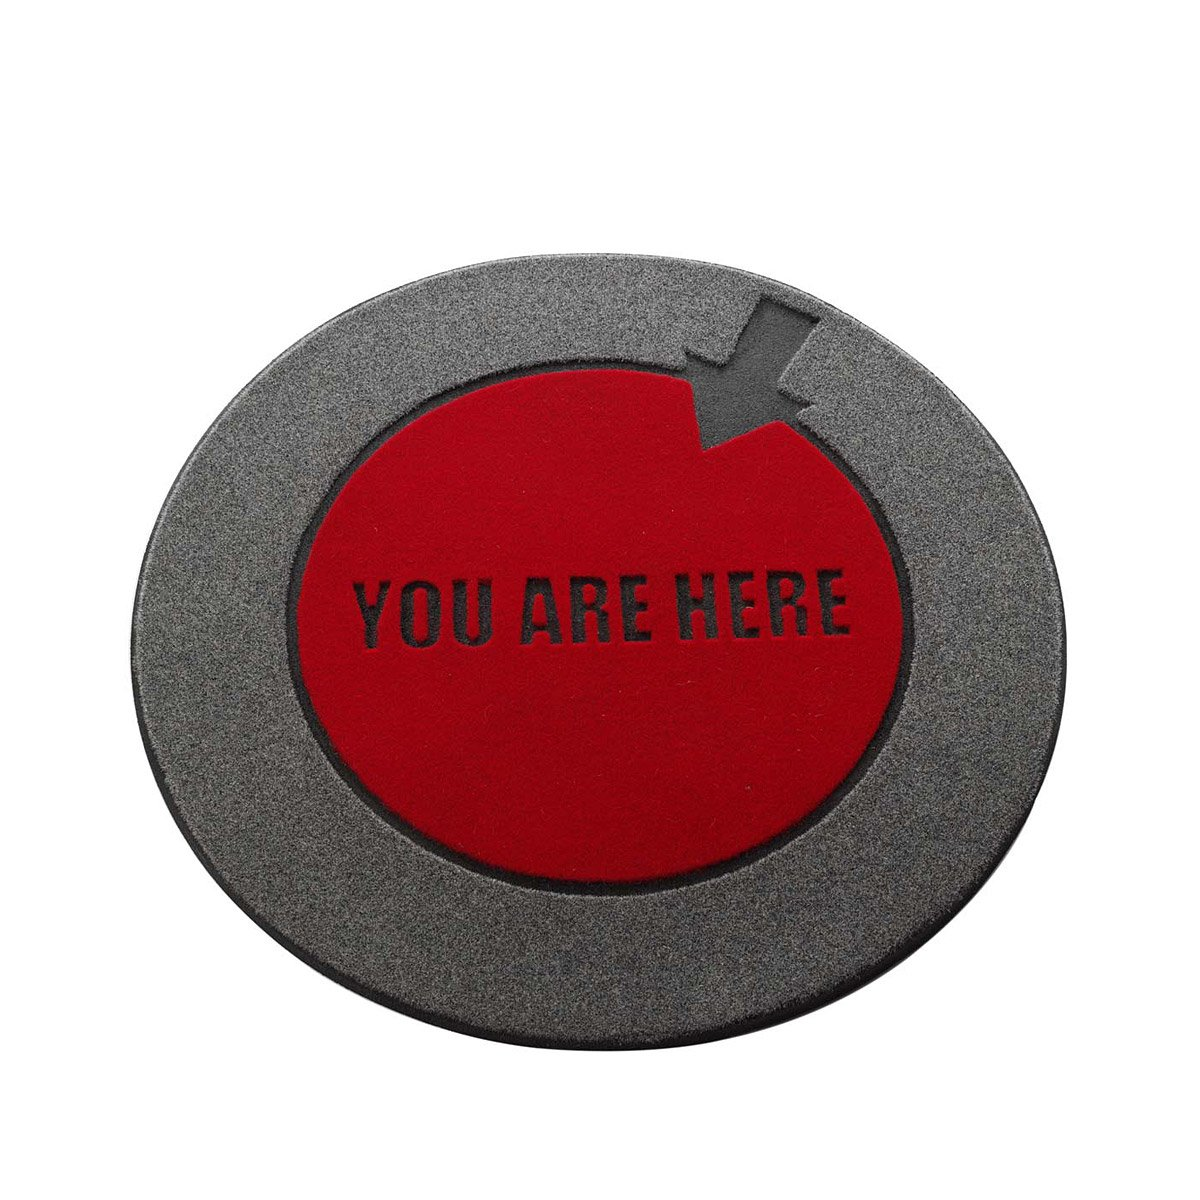 You Are Here' Floor Mat | Funny, Durable, Witty Doormat Sets Your ...